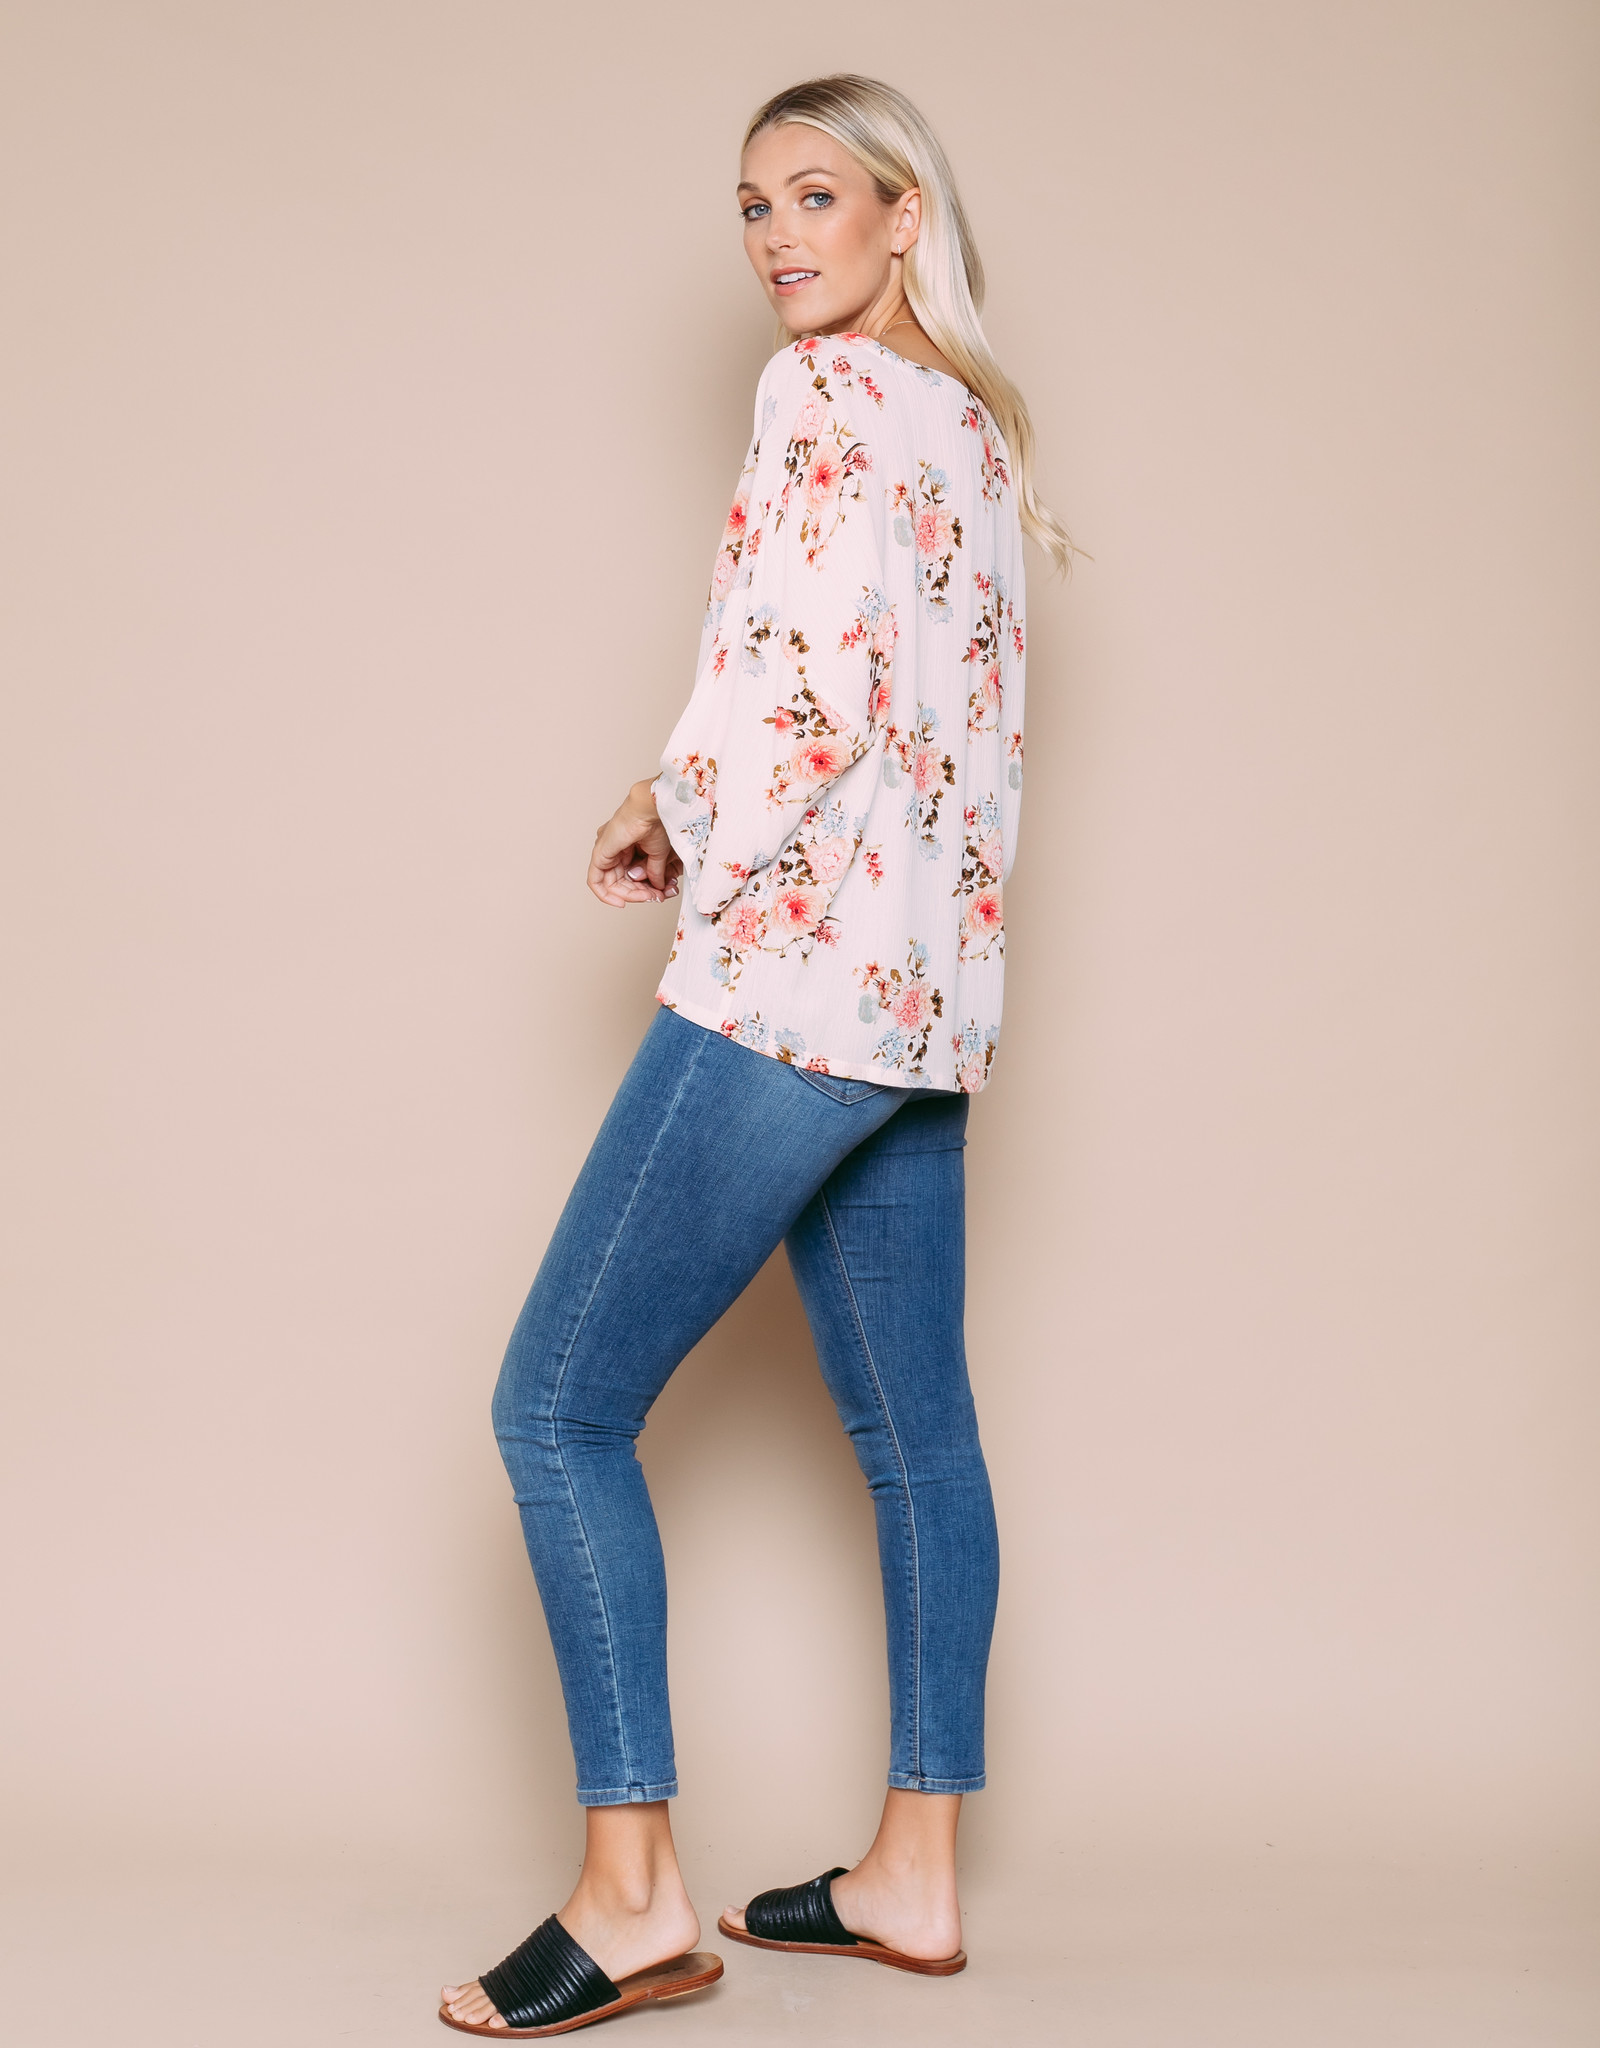 Orb Clothing Mia Floral Tee